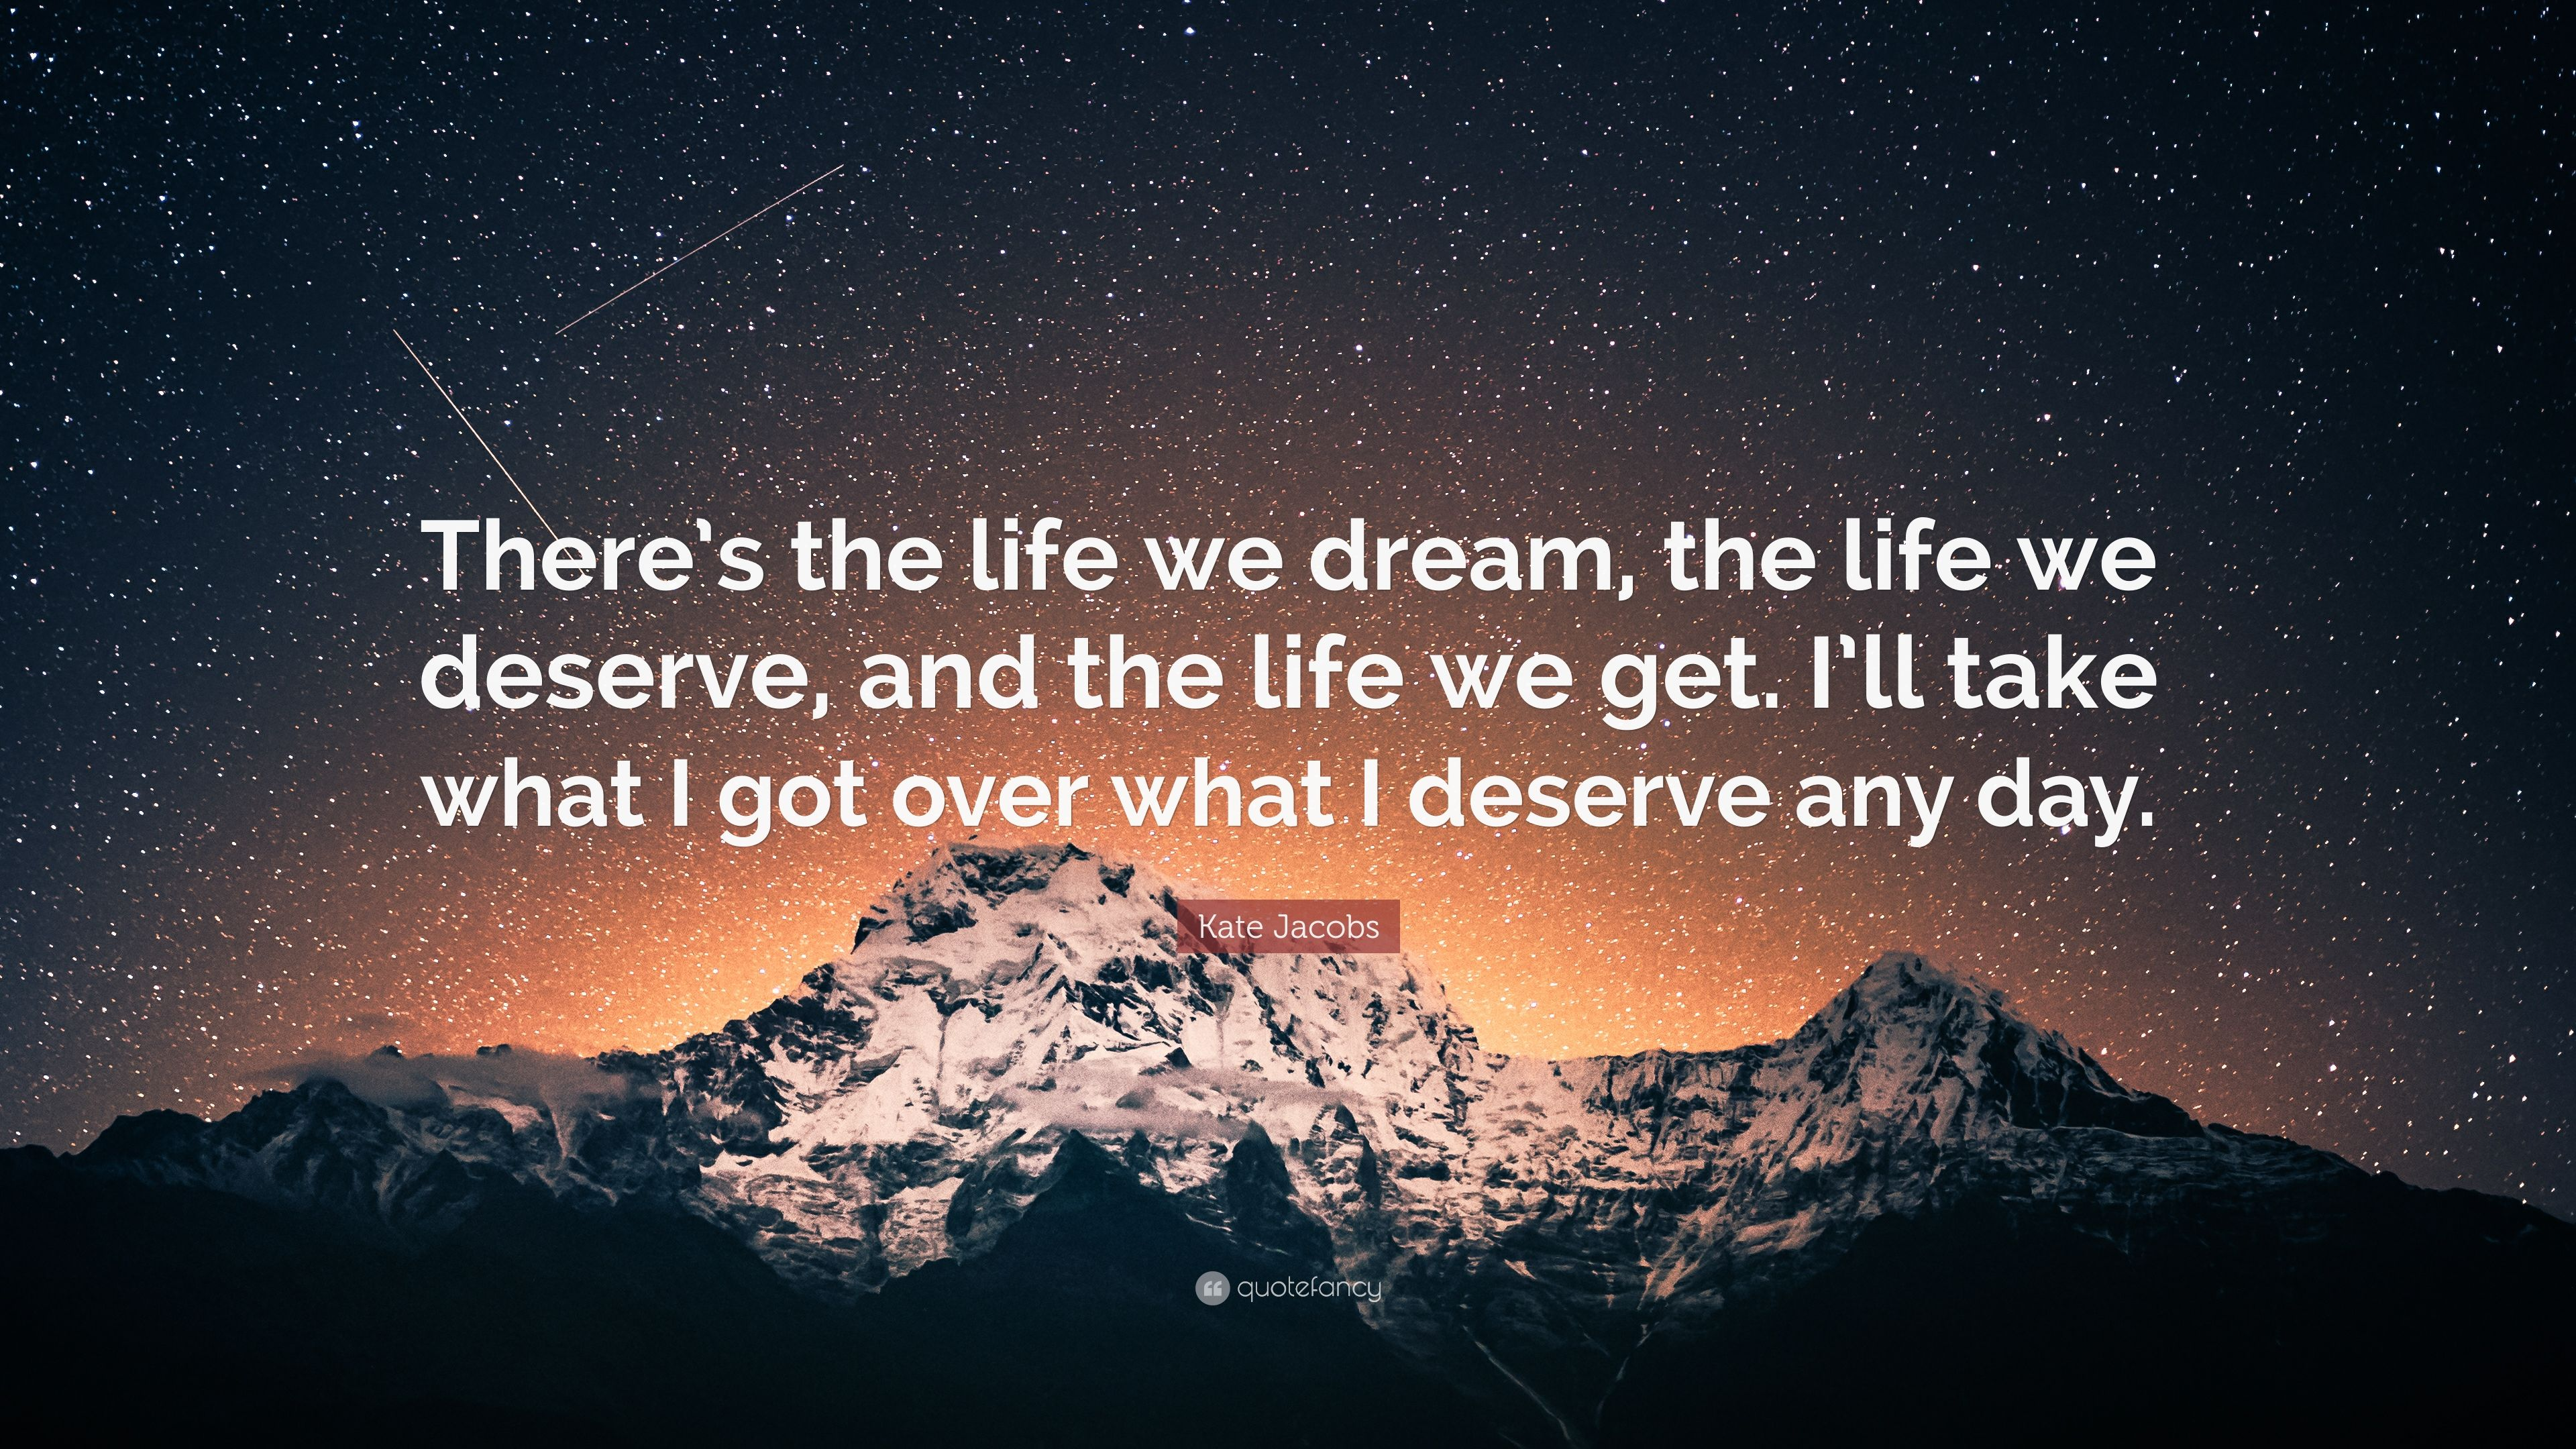 Kate jacobs quote theres the life we dream the life we deserve kate jacobs quote theres the life we dream the life we deserve altavistaventures Image collections